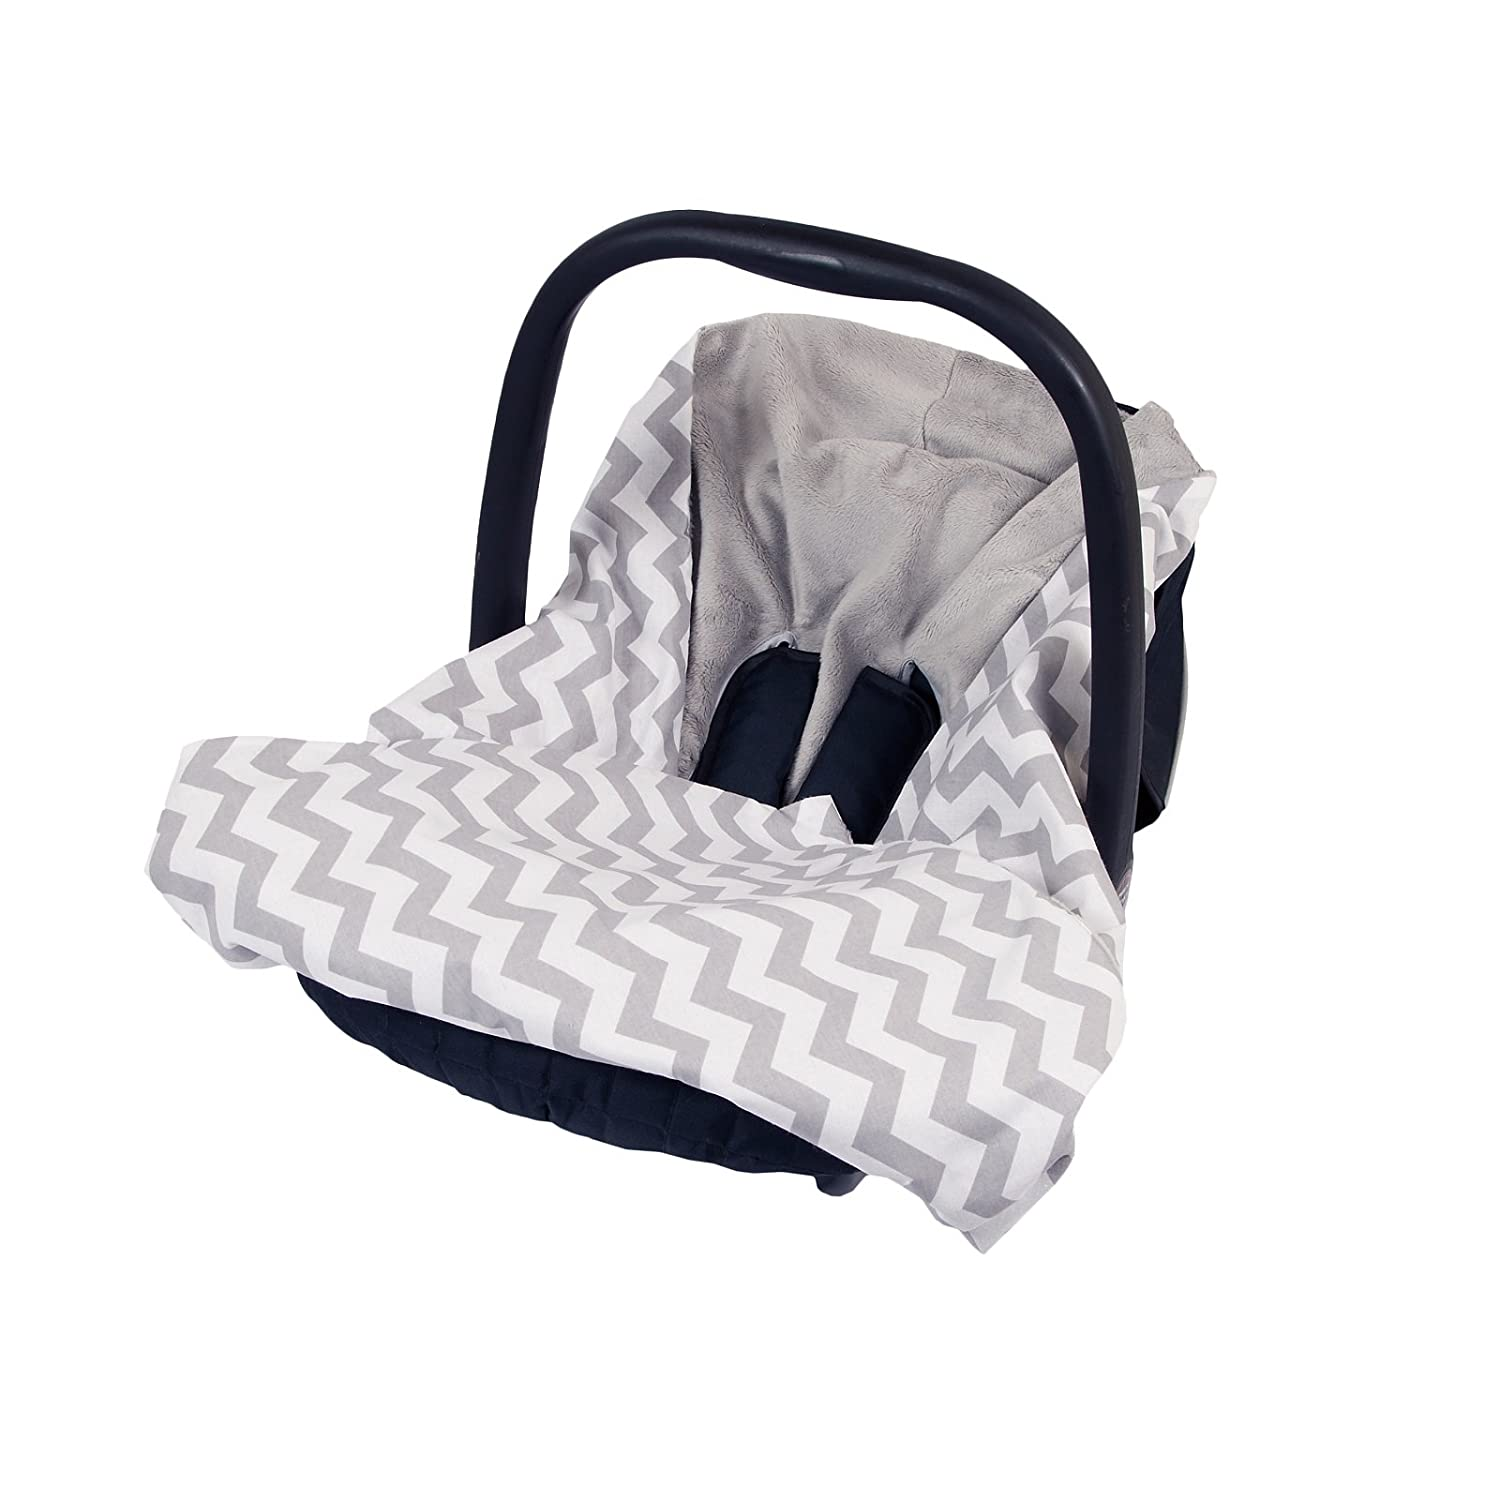 New Double Sided Baby Wrap For Car Seat Baby Travel Wrap Baby Car